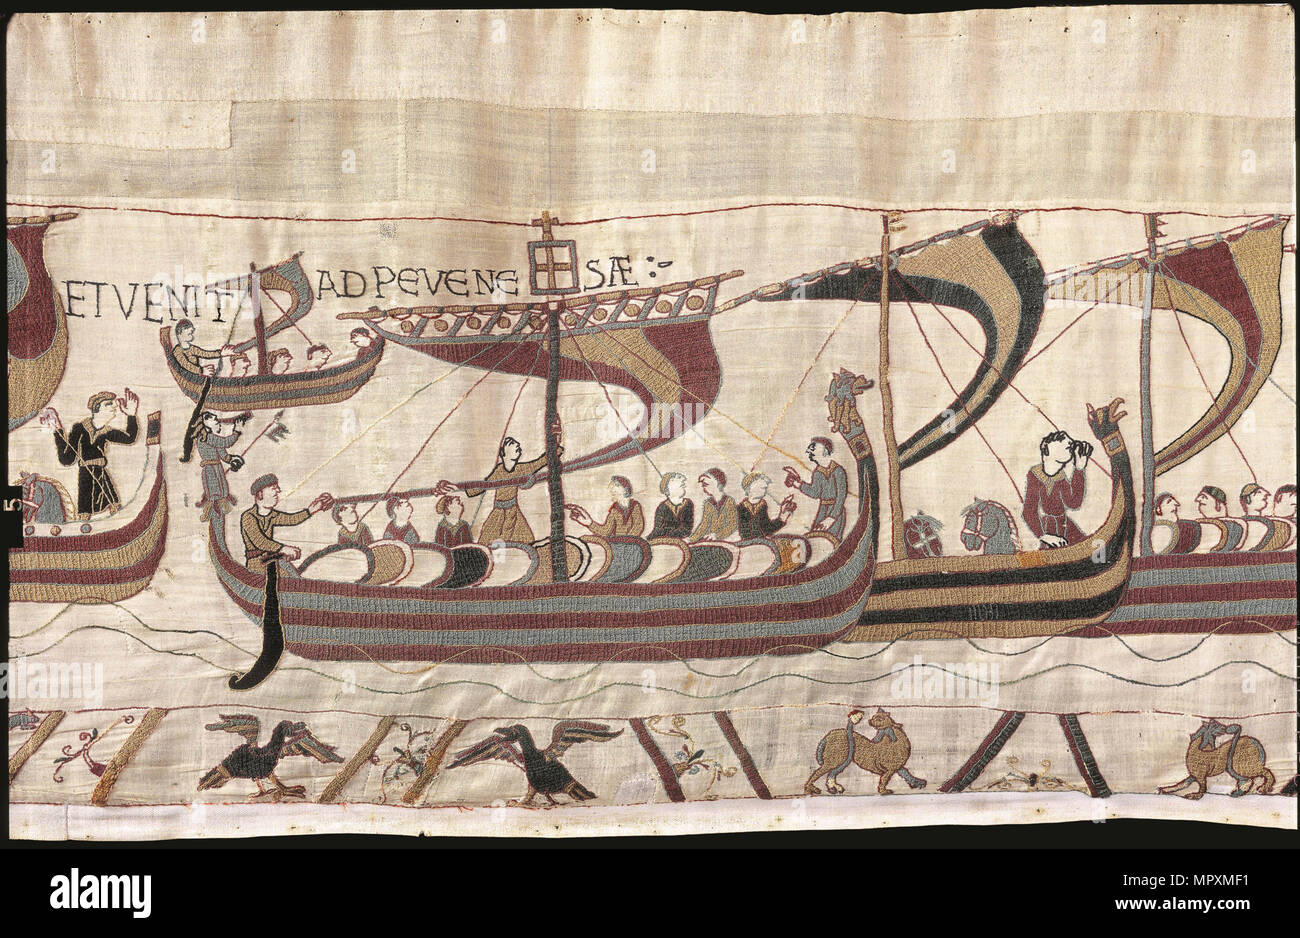 The Bayeux Tapestry. Scene 38: William and His Fleet Cross the Channel, ca 1070. - Stock Image